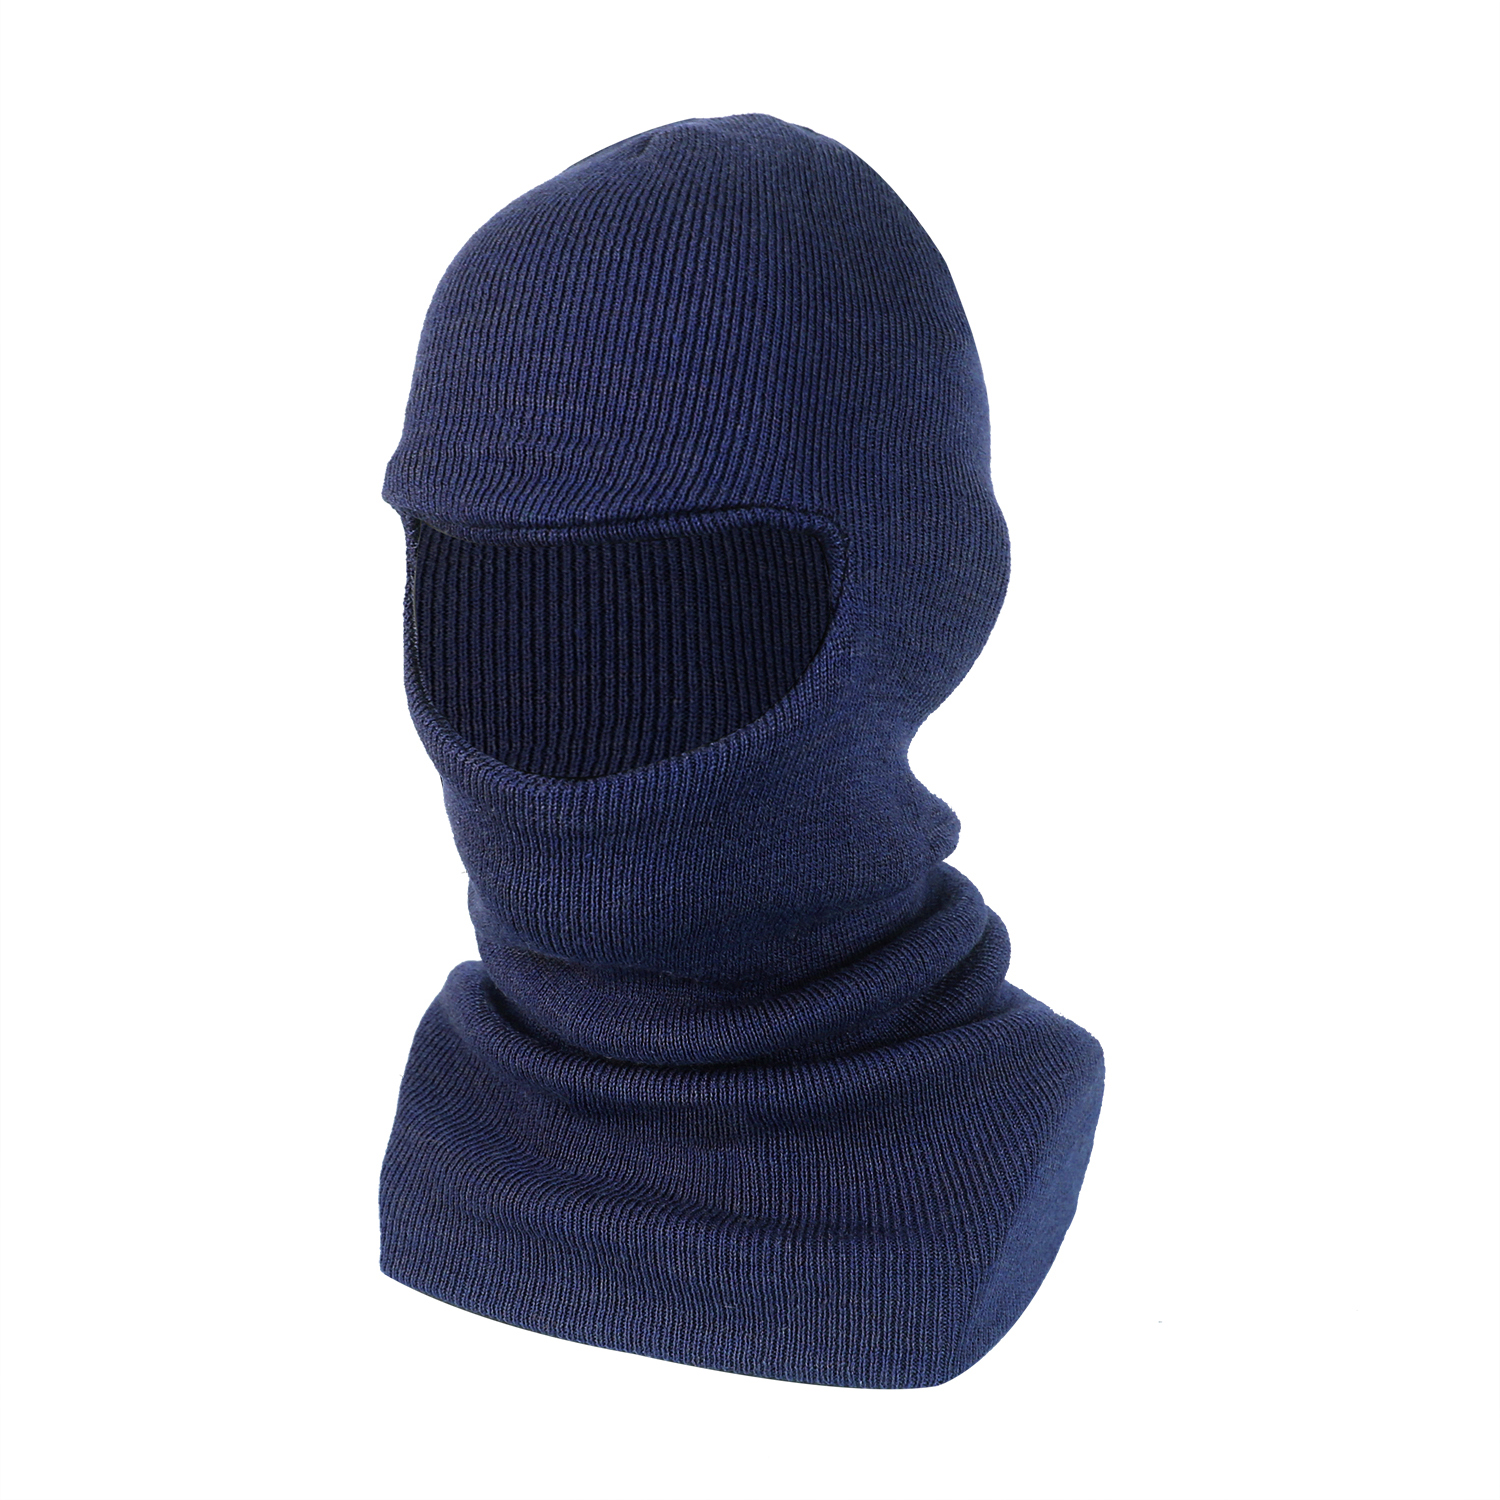 Single Layer Wool/Acrylic Balaclava/WKH-014-N